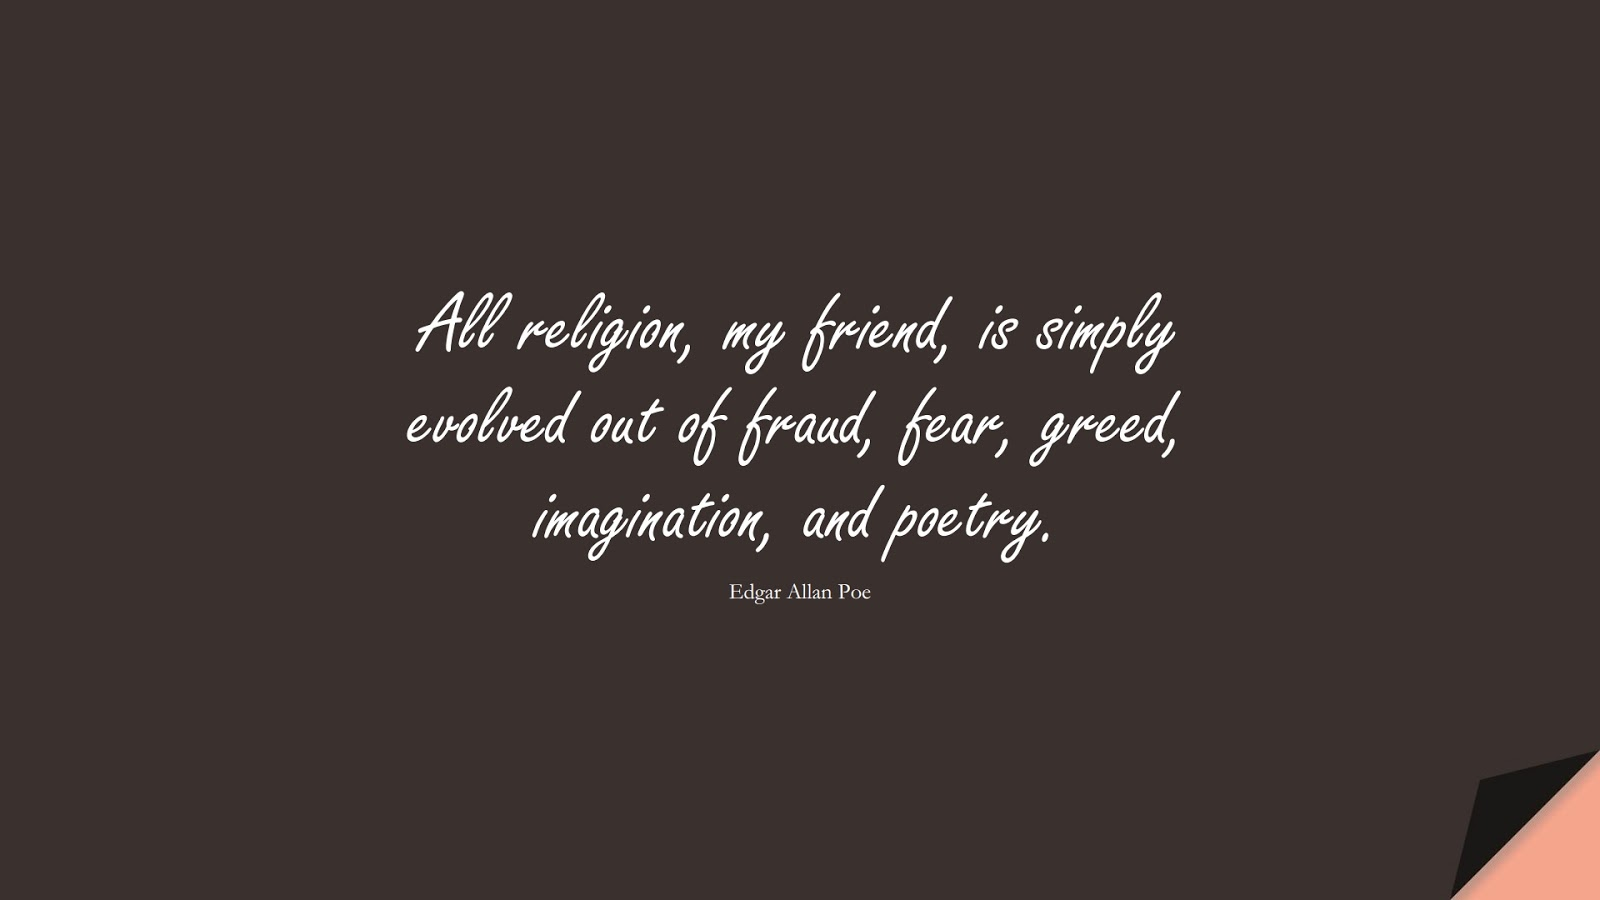 All religion, my friend, is simply evolved out of fraud, fear, greed, imagination, and poetry. (Edgar Allan Poe);  #FearQuotes